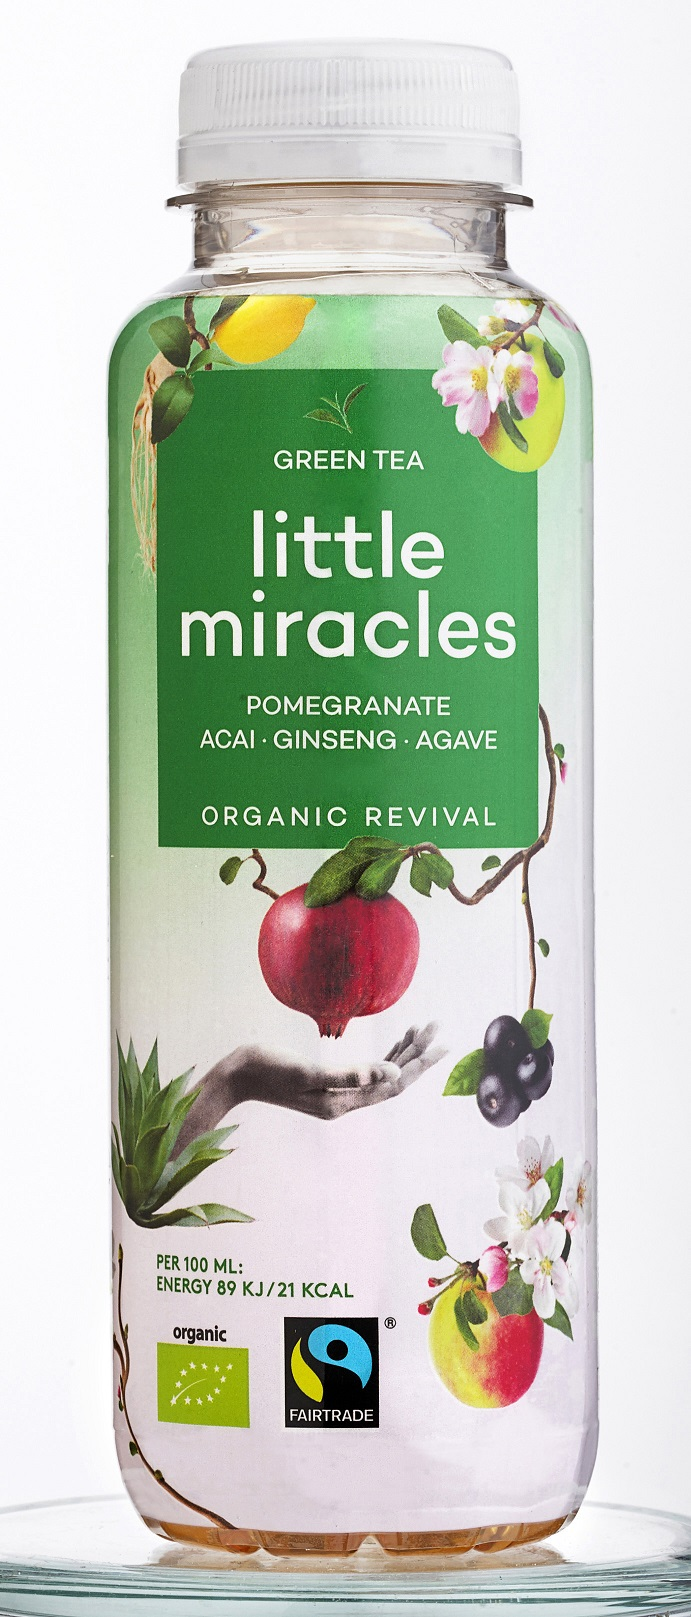 Little Miracles Green Tea Pomegranate